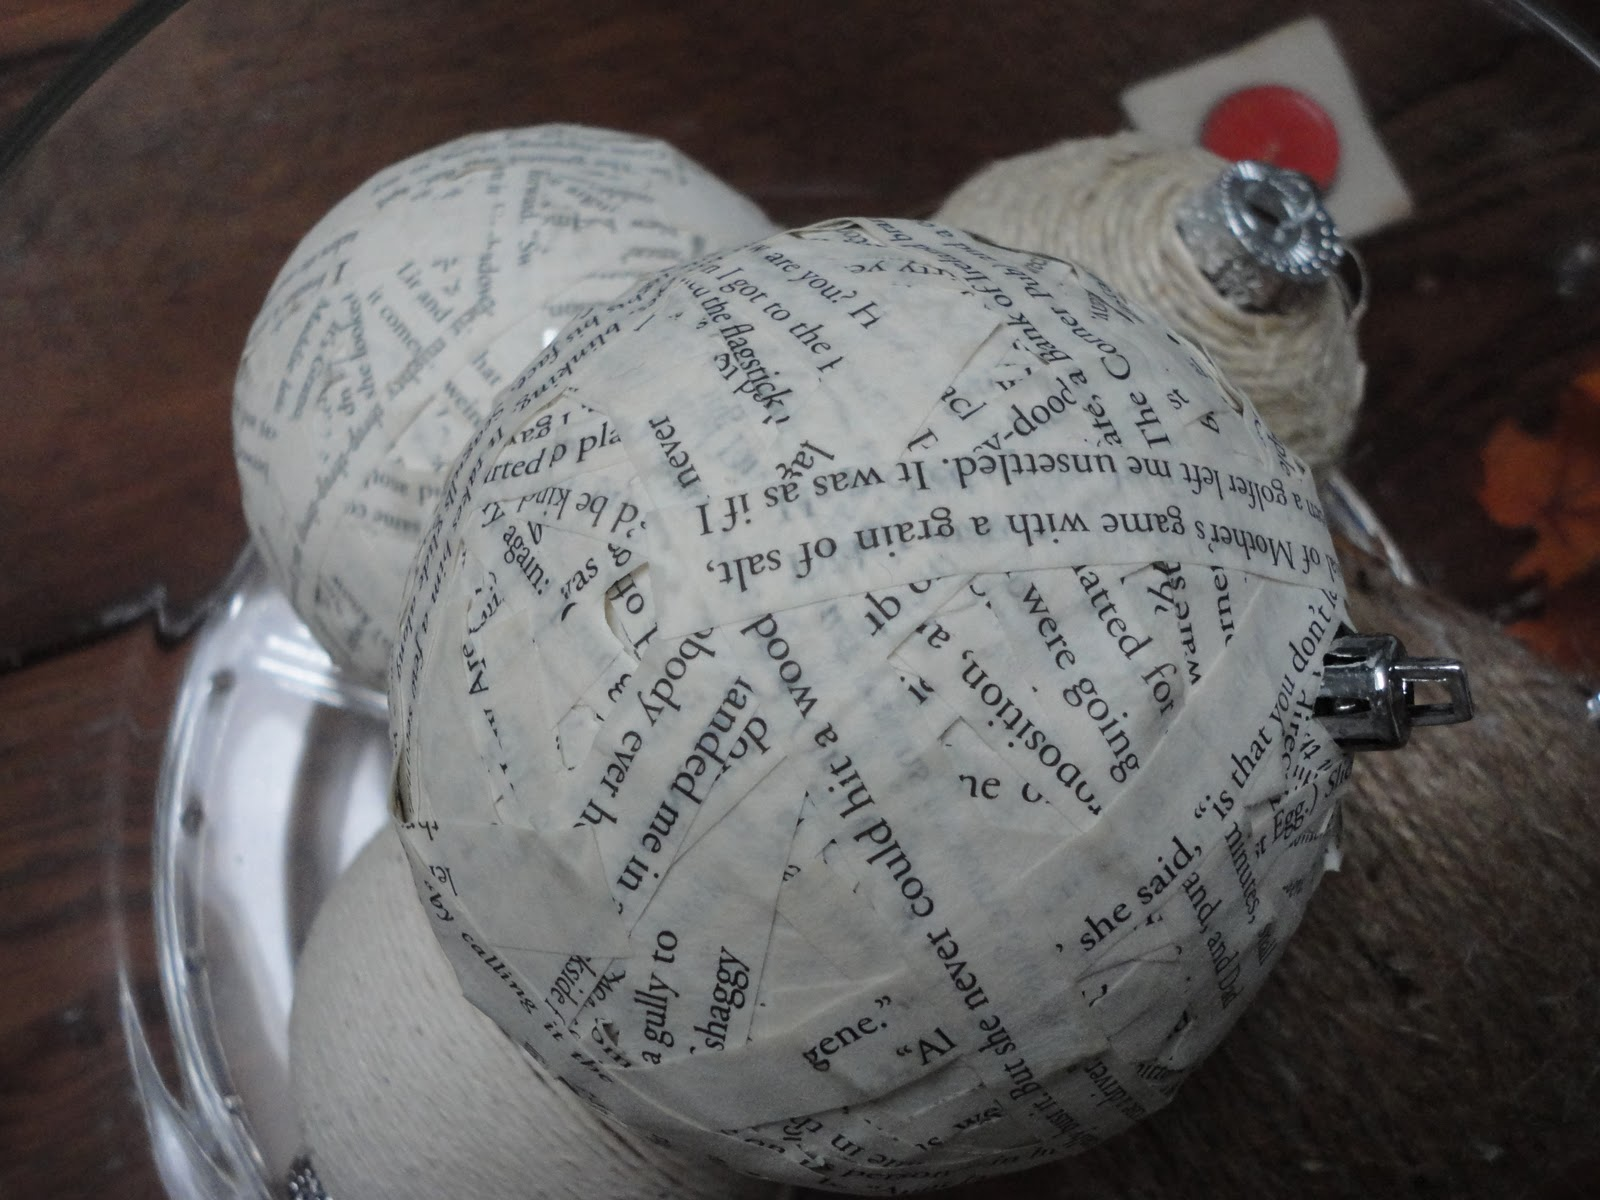 Paper mache ornaments -  On Doing An Earthy Natural Looking Tree With Lots Of Textures And Different Shades Of Earth Tones So I Made This Paper Mache Christmas Ornament